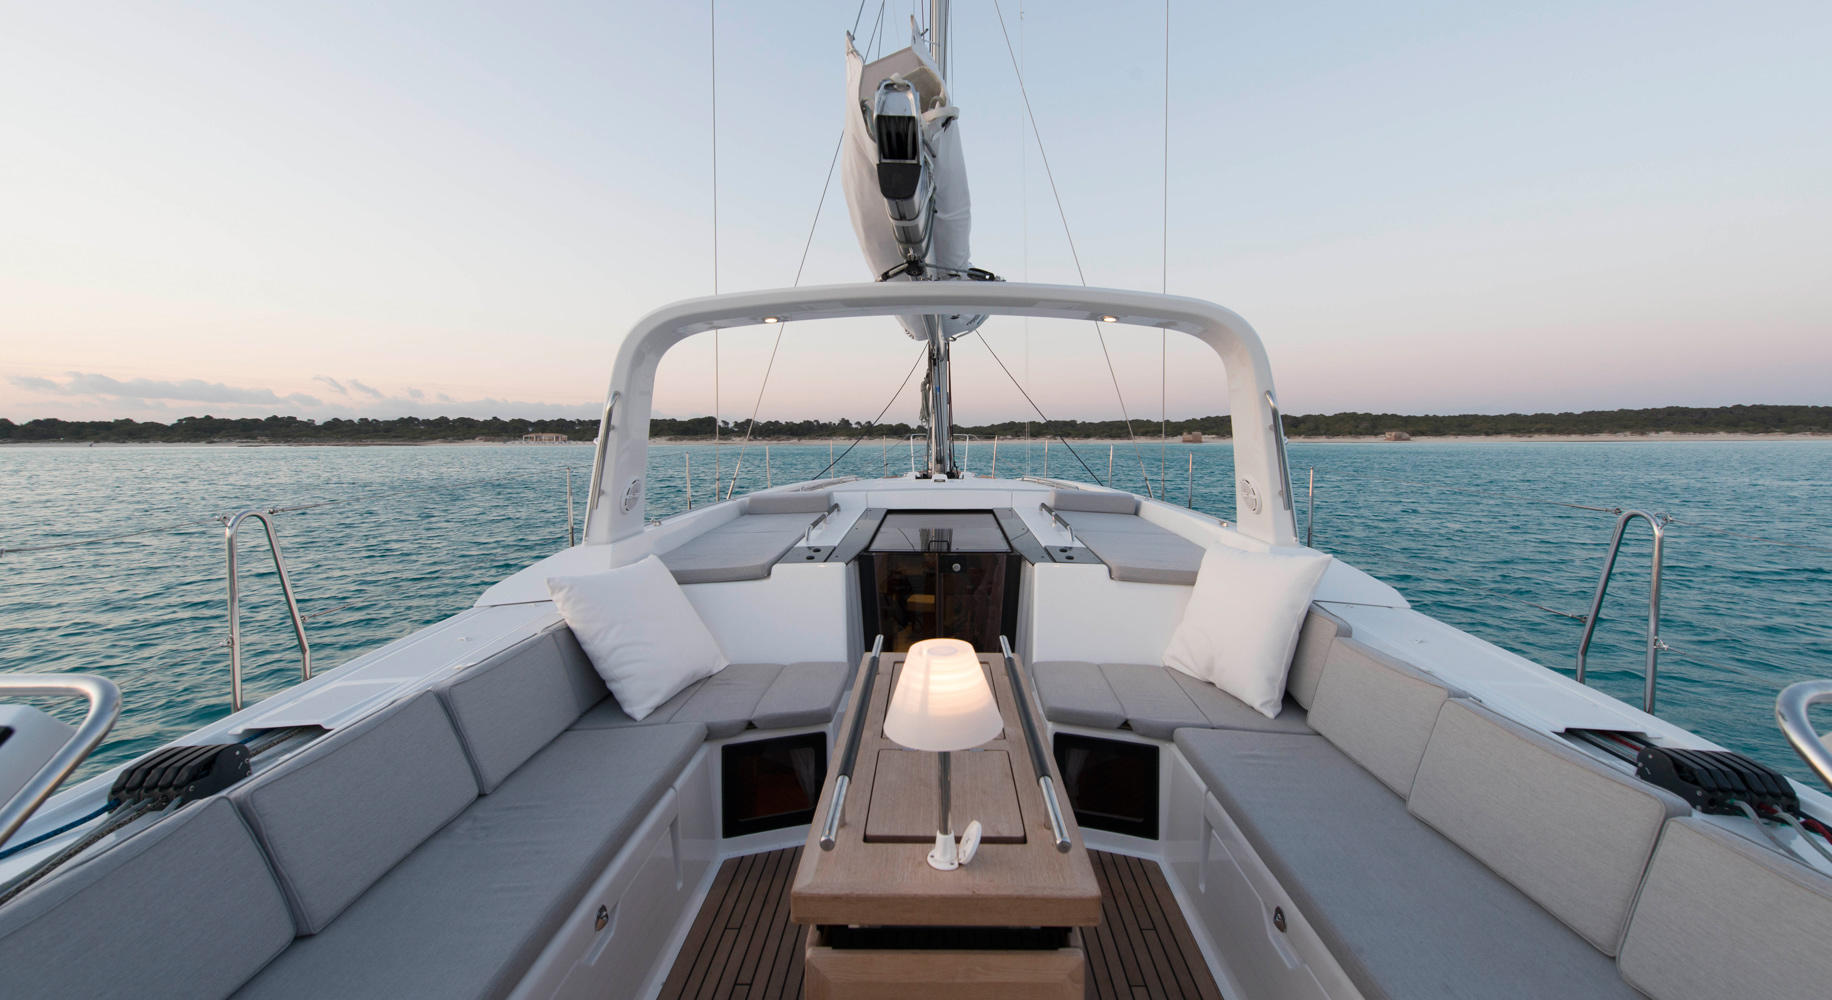 Beneteau Oceanis 55 Sailboat for sale